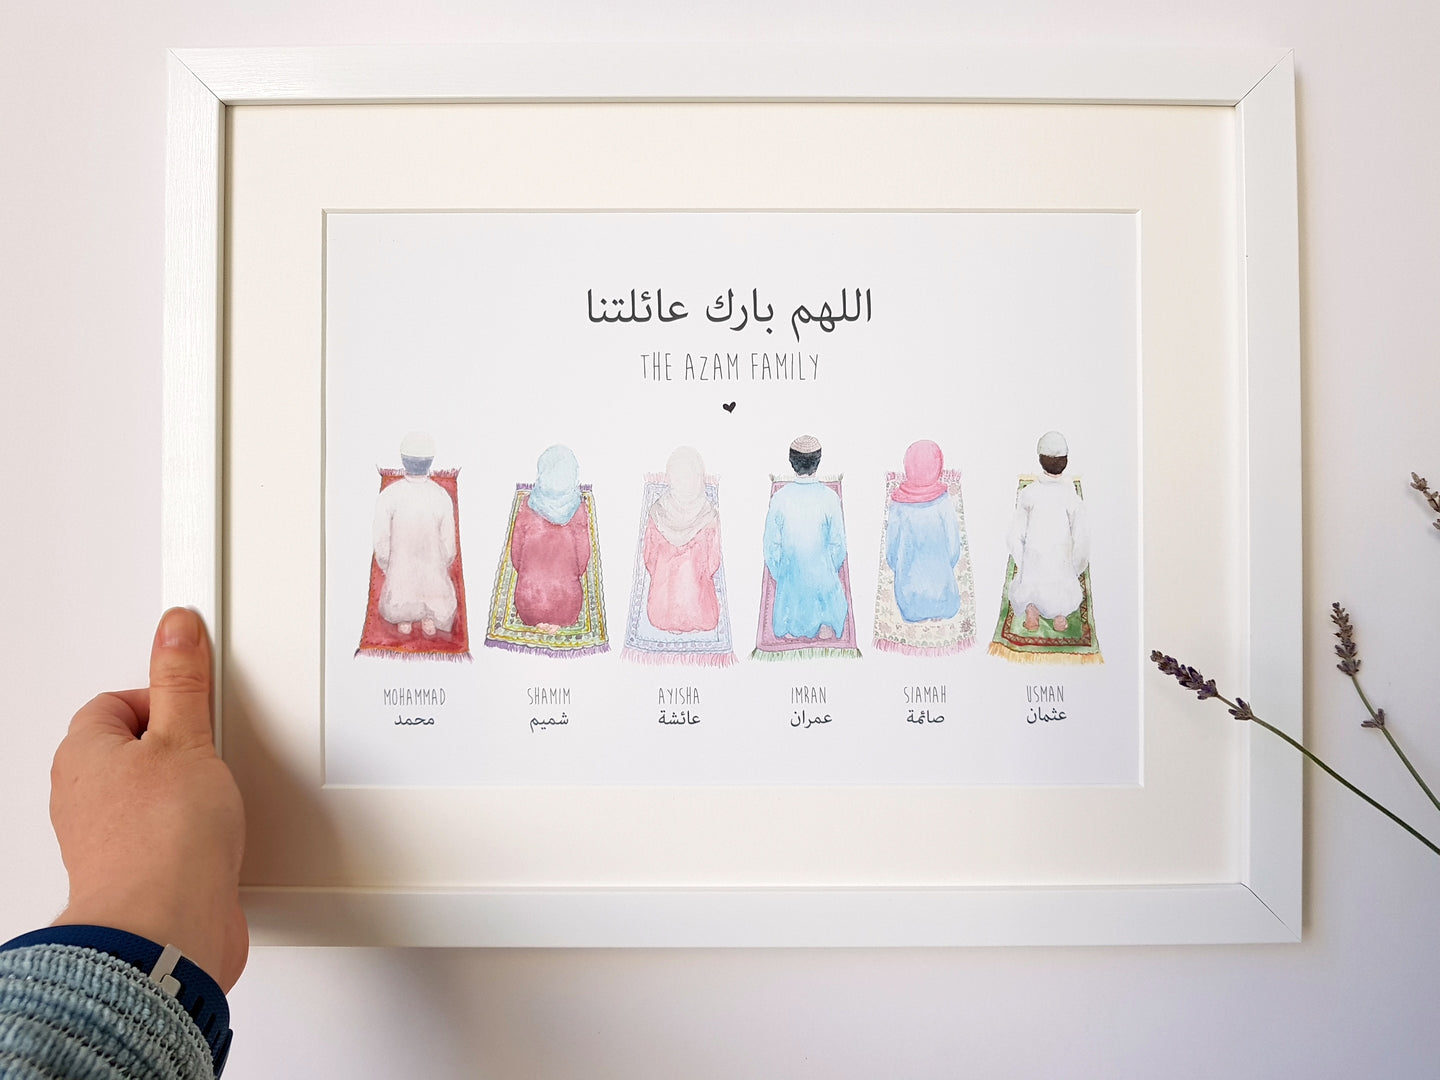 Islamic Family Salah Print personalised in Arabic & English by Qalbi